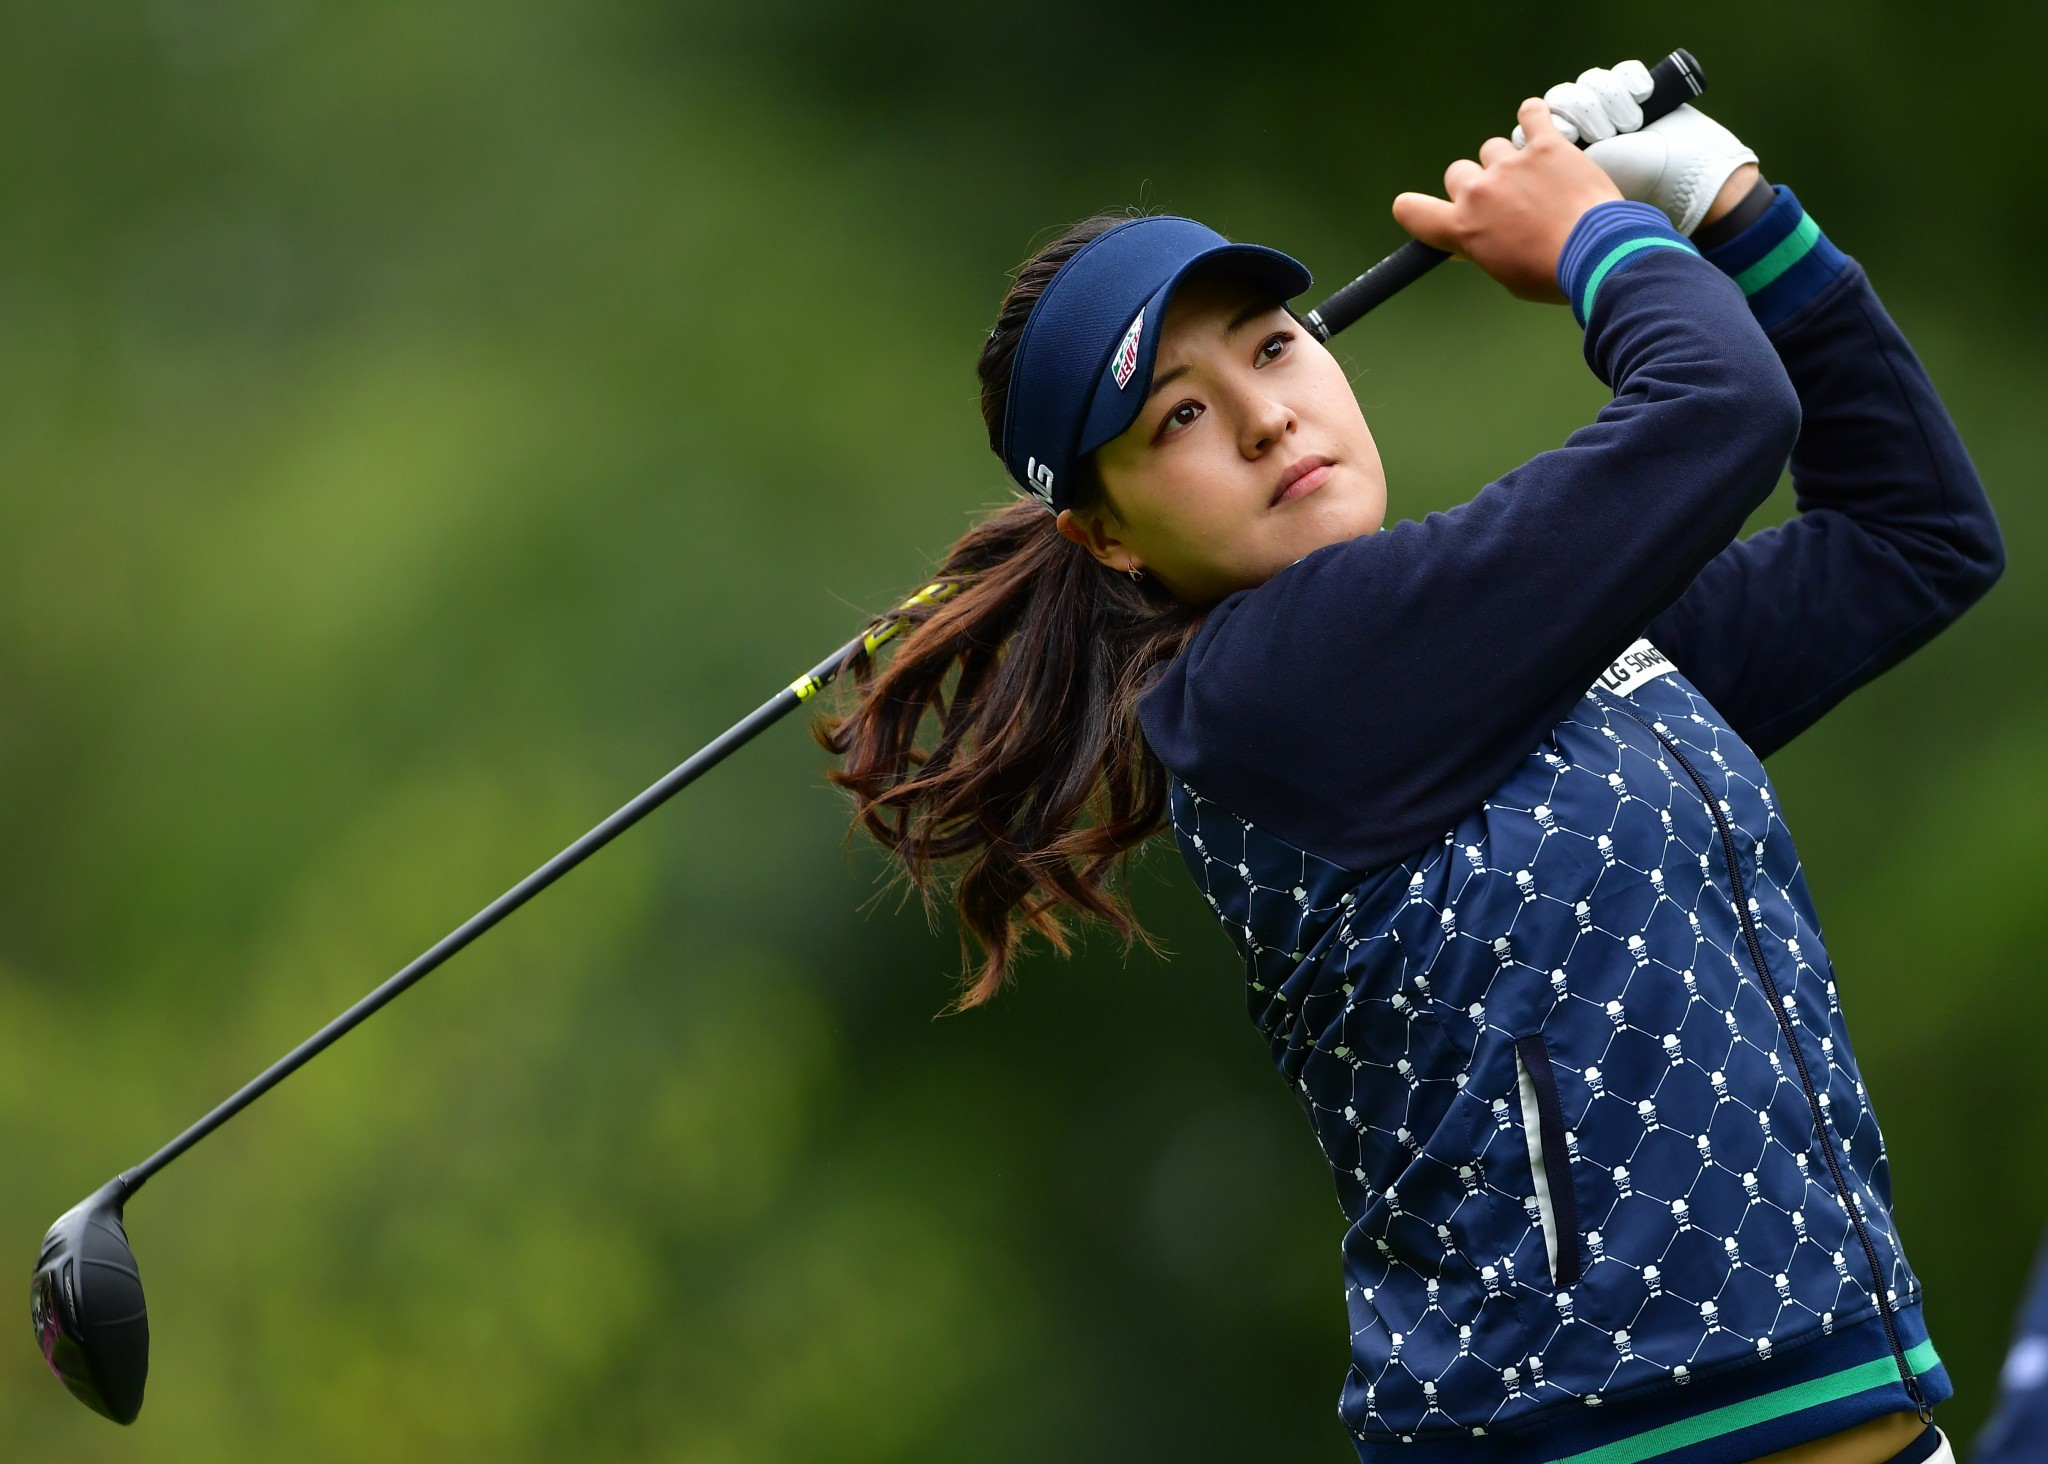 Chun faces huge challenge as she defends Evian title she won in world record fashion